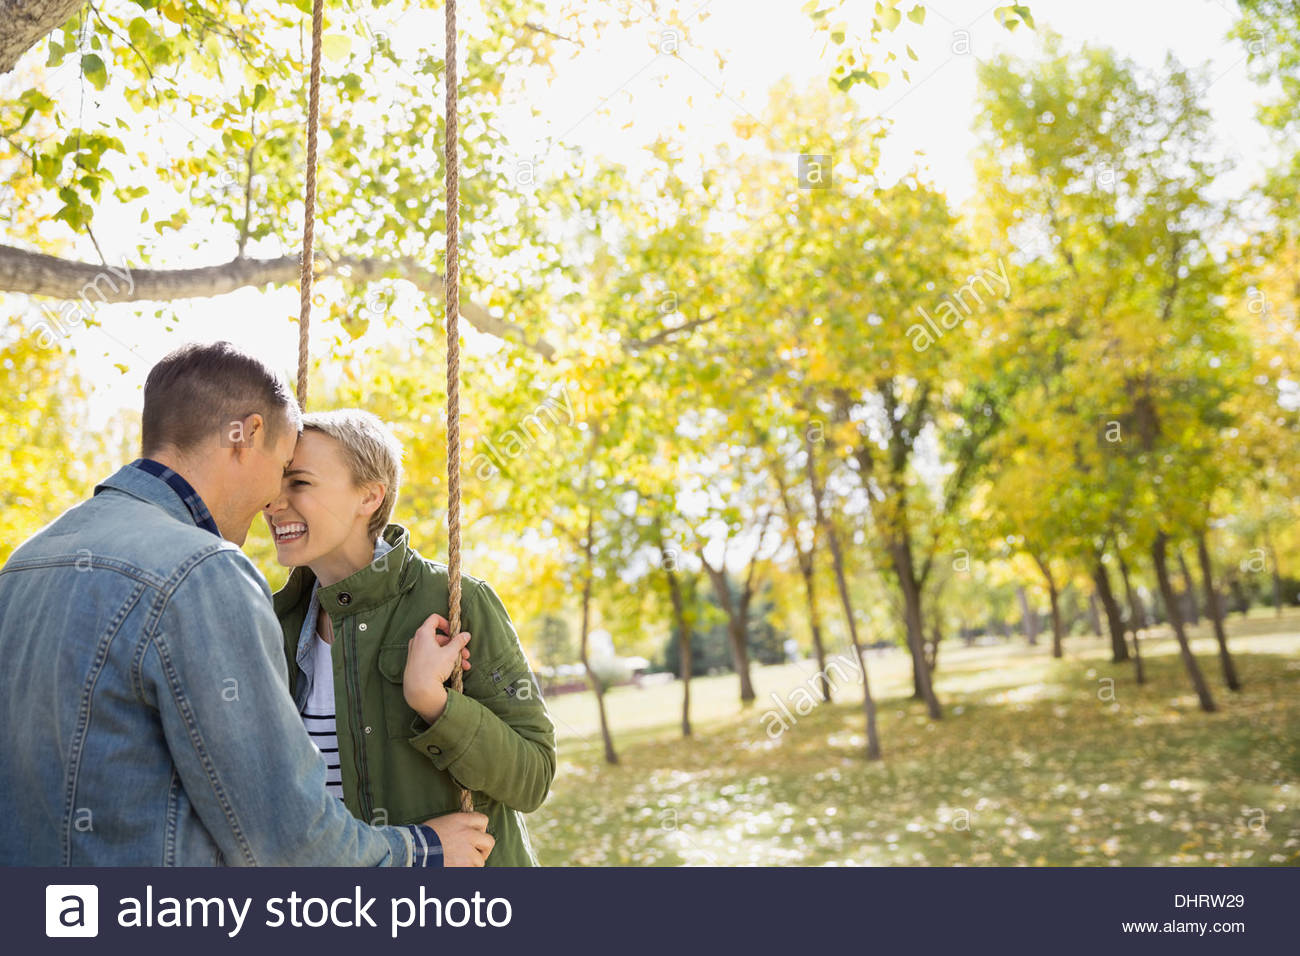 Couple spending quality time outdoors - Stock Image